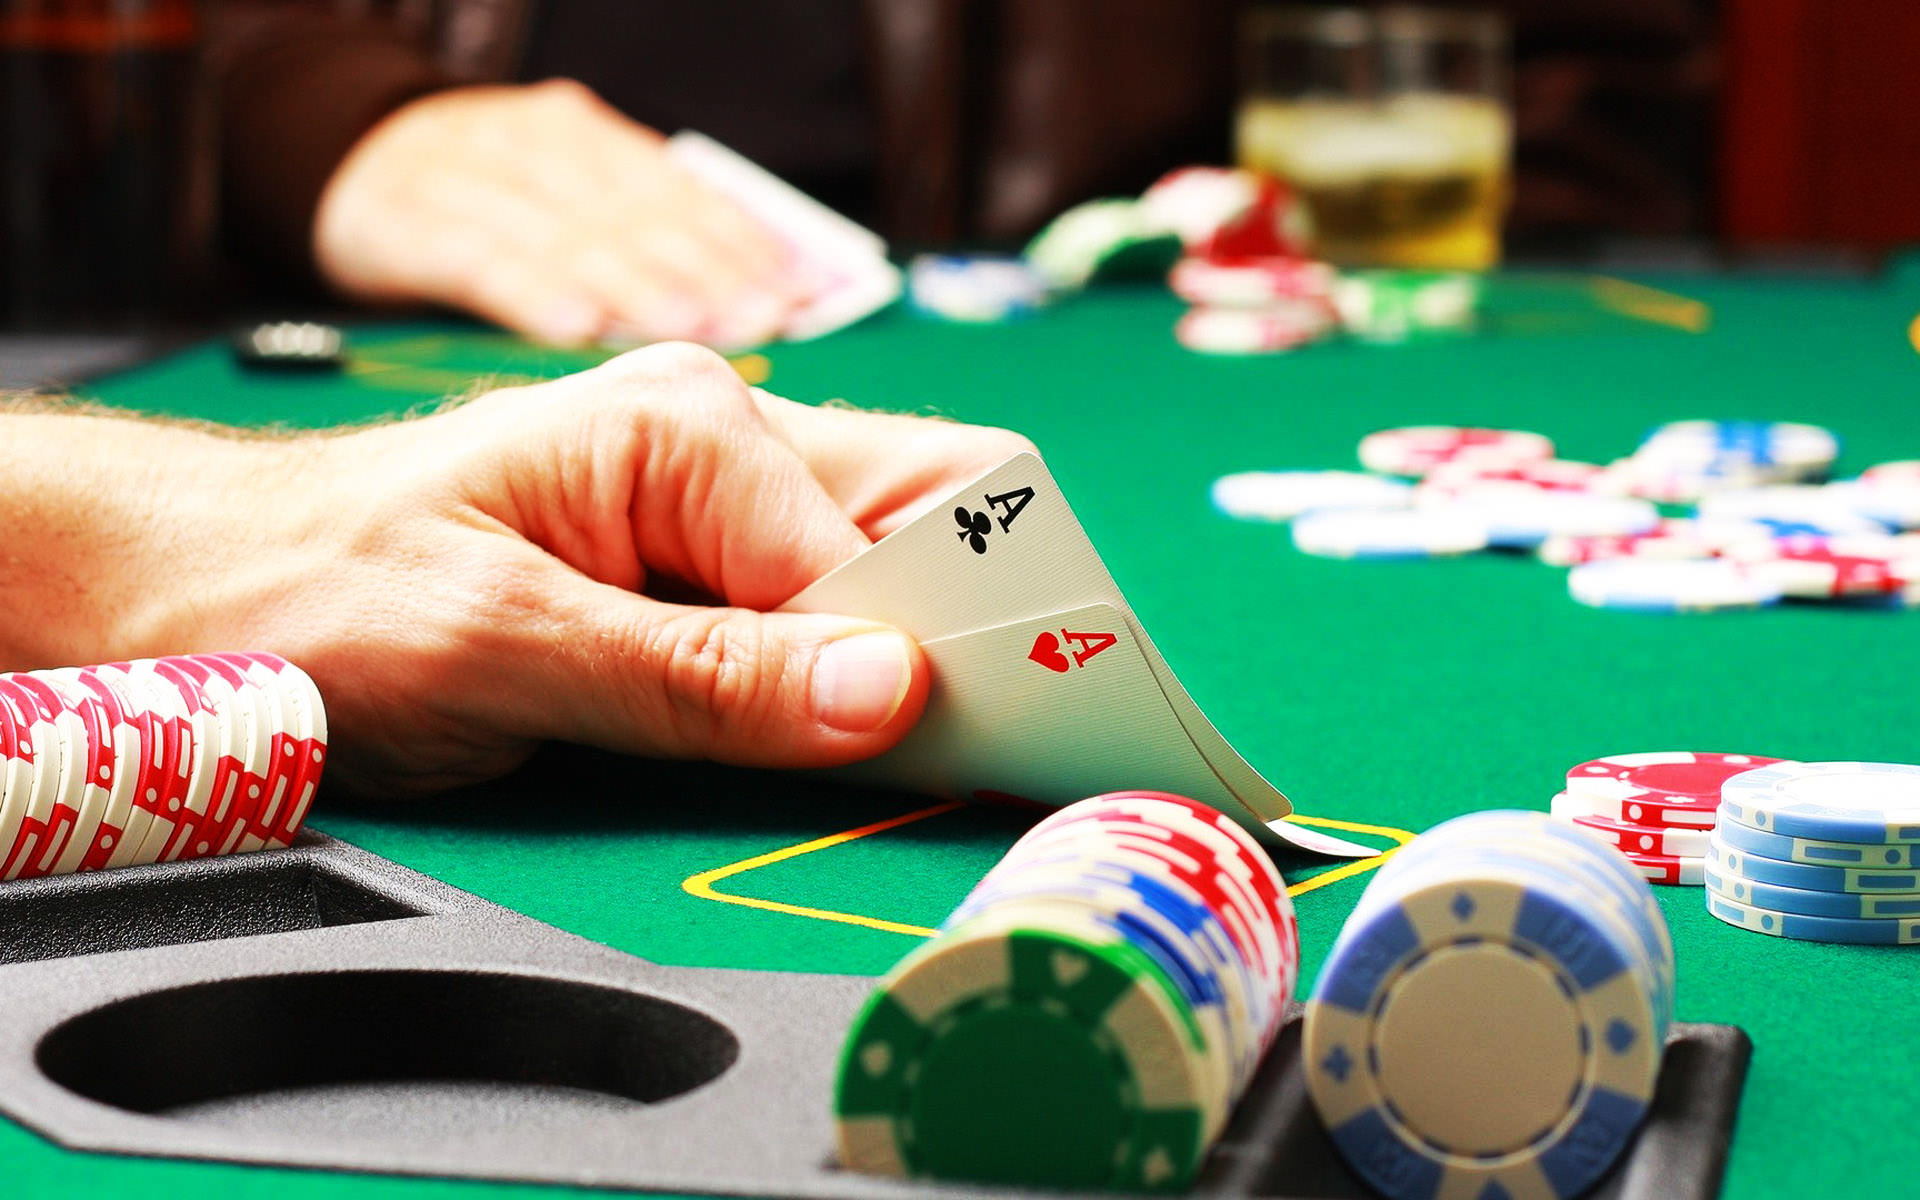 Crazy Casino Classes From The professionals